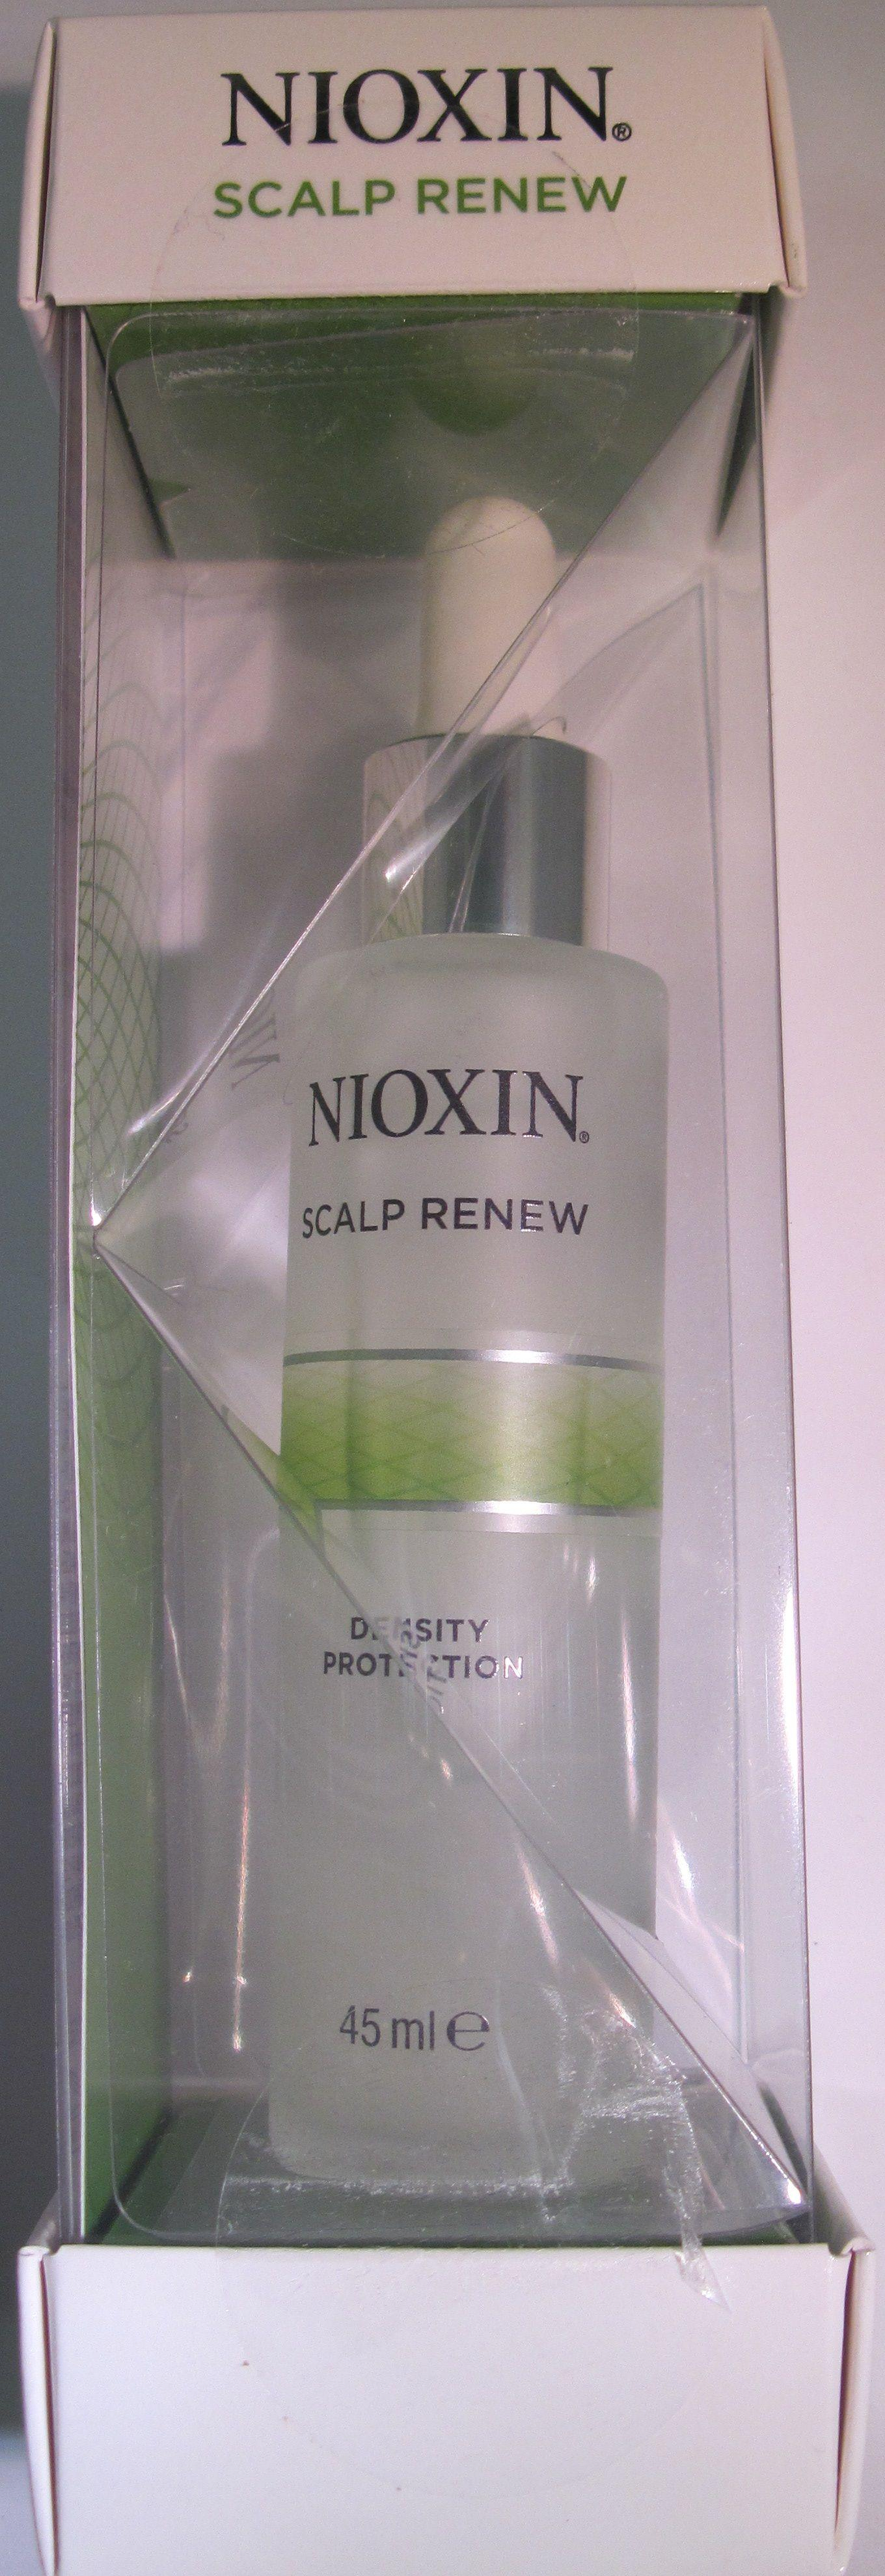 Nioxin Scalp Renew - Density Protection 45 ml